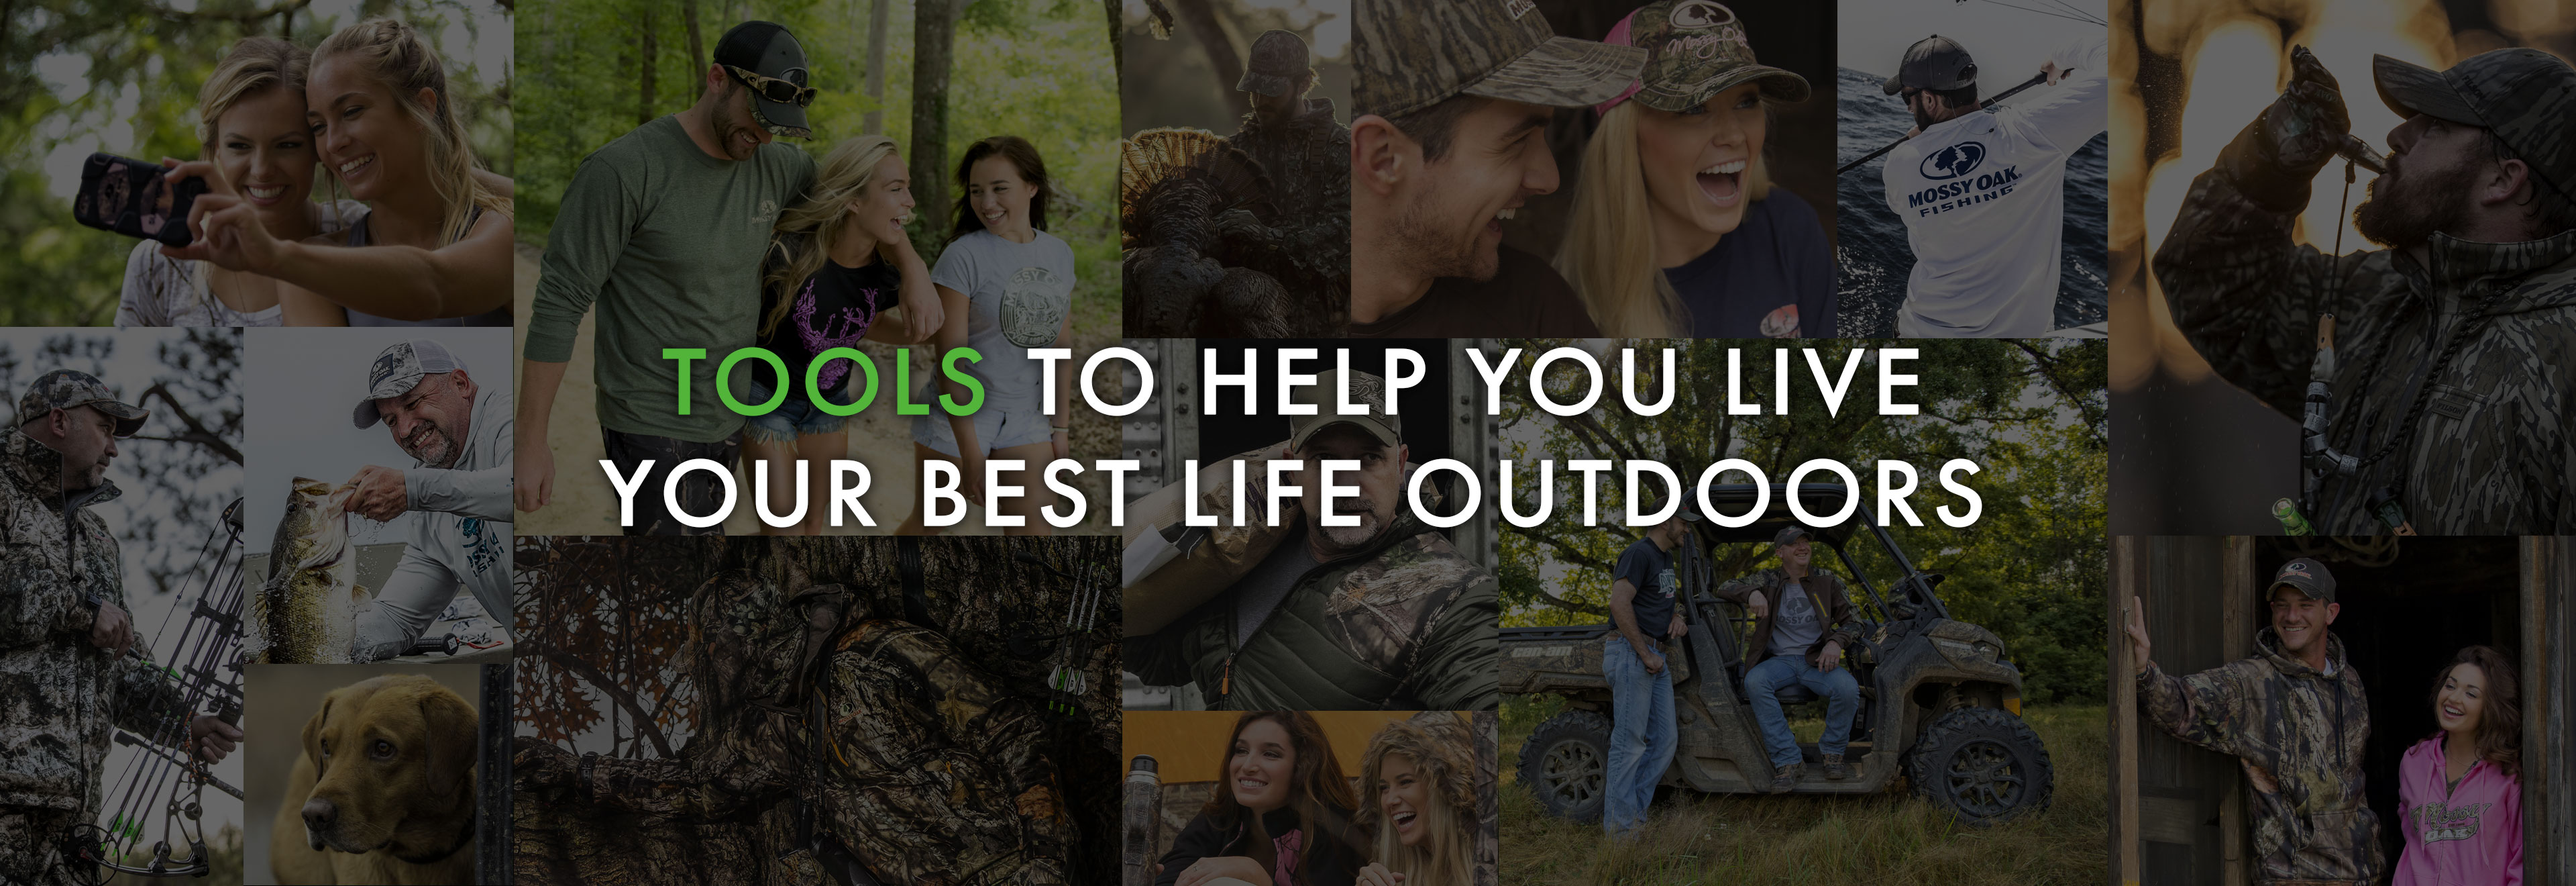 Tools to help you live your best life outdoors.